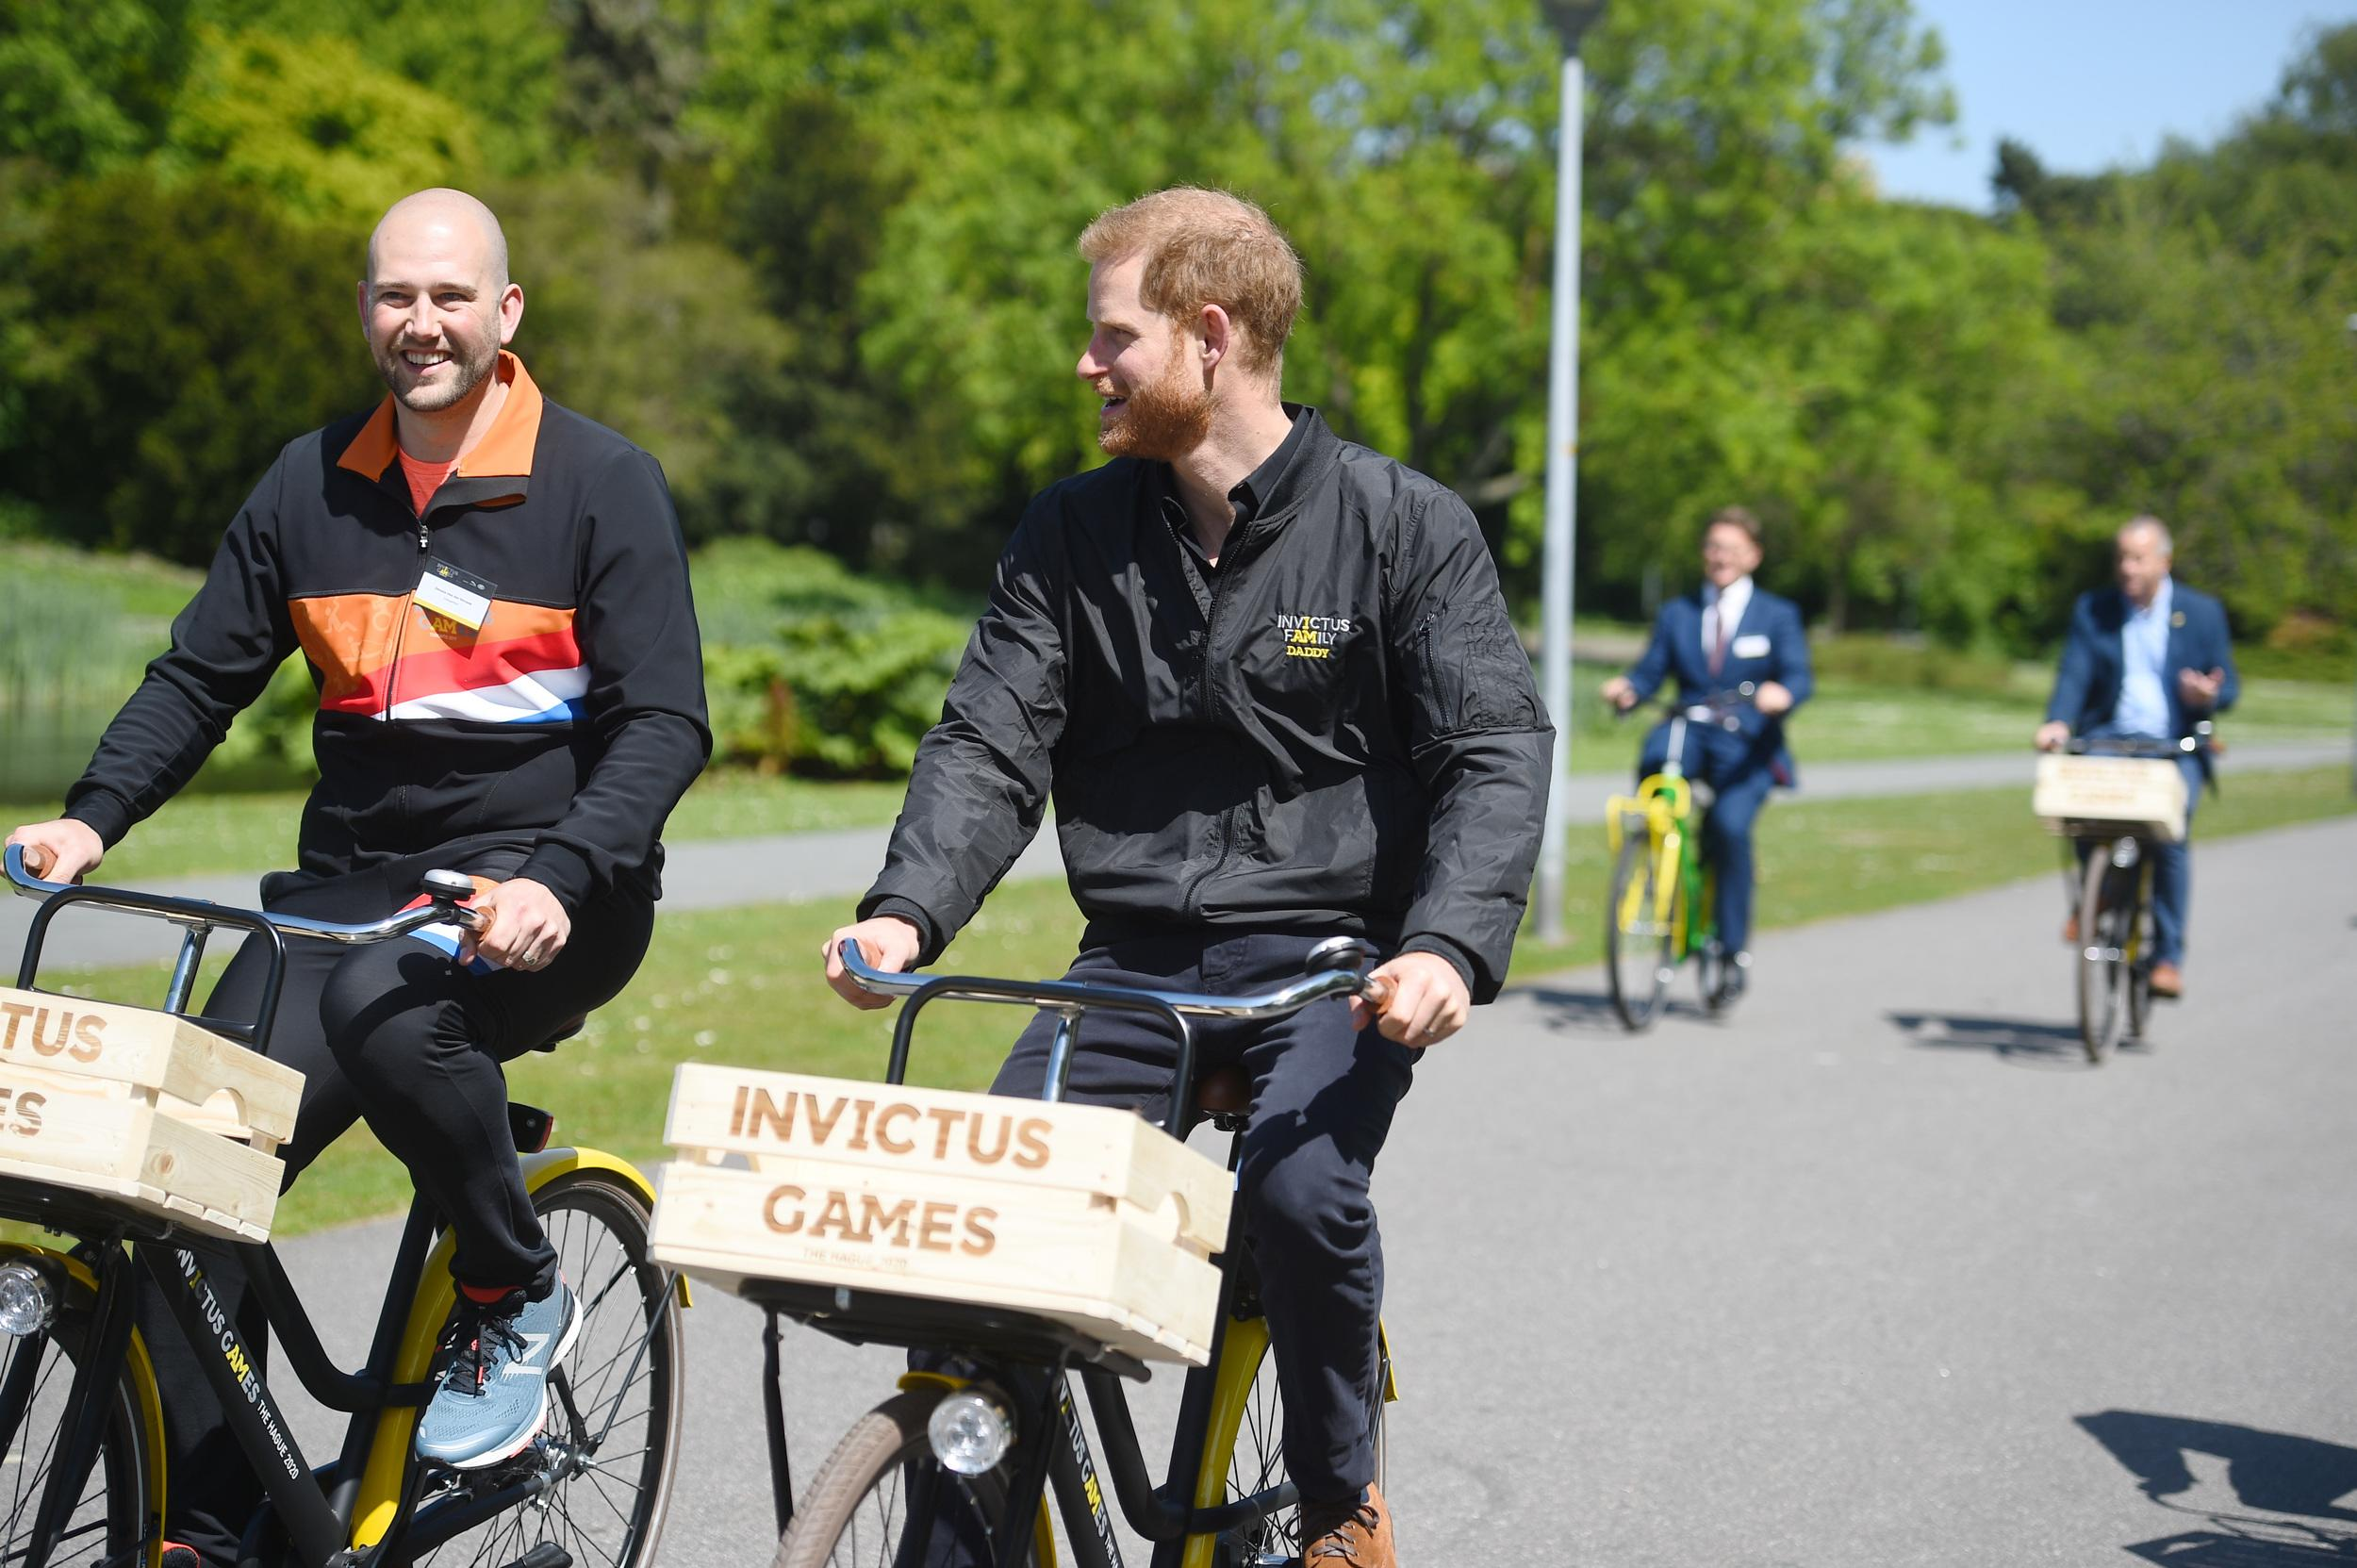 The Duke of Sussex (centre) rides a bicycle during events to launch the one year countdown to next year's Invictus Games in the Hague, in the Netherlands. (Photo by Kirsty O'Connor/PA Images via Getty Images)